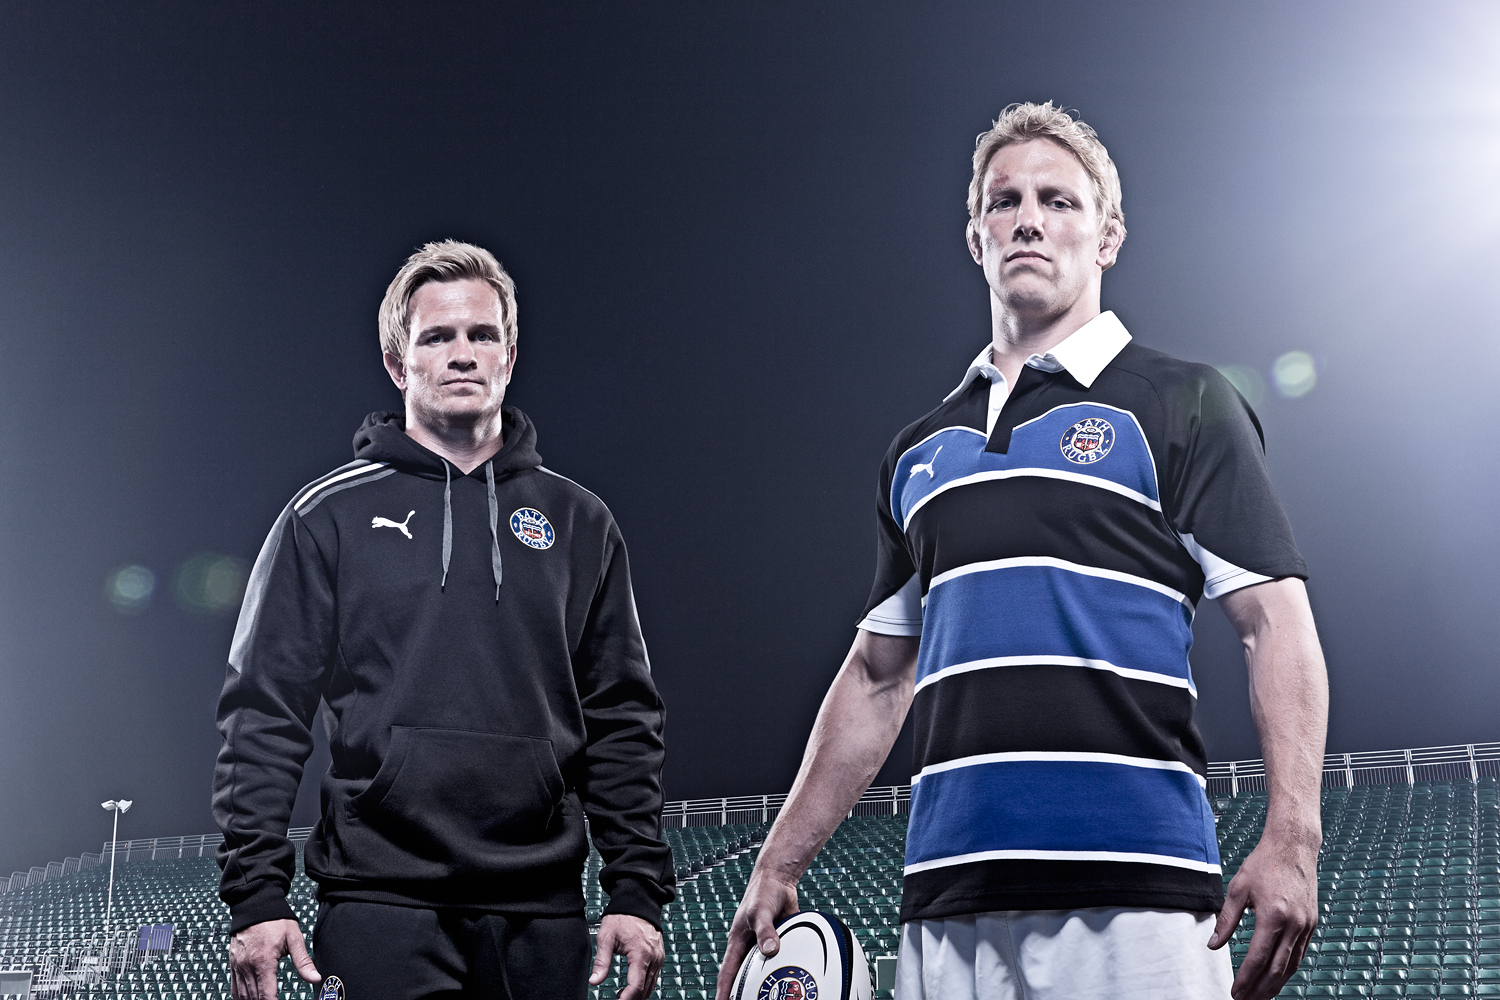 rvanderplank bath rugby classens and moody.jpg